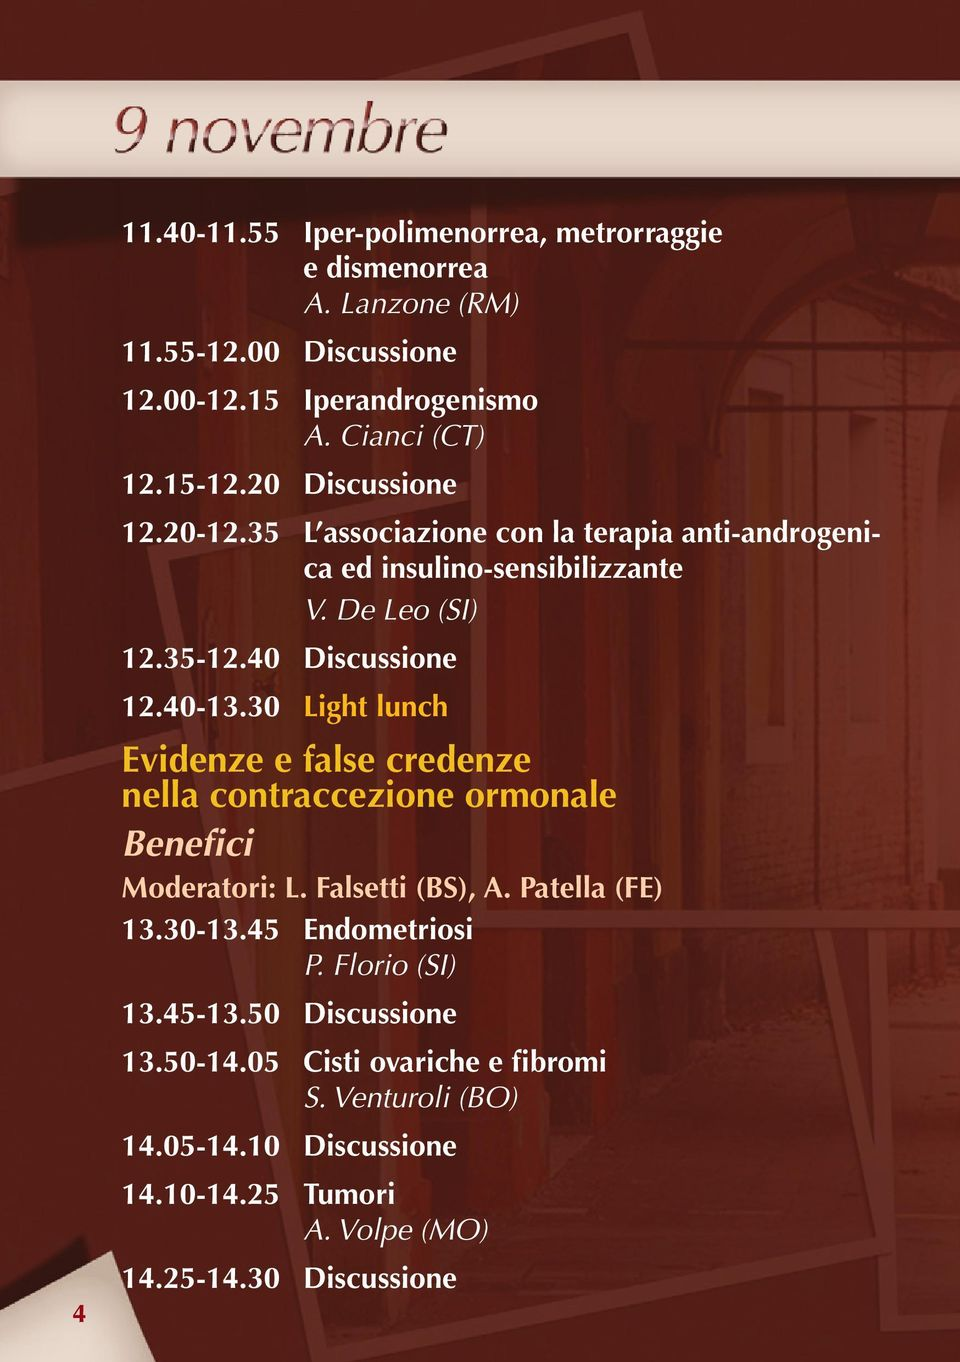 30 Light lunch Evidenze e false credenze nella contraccezione ormonale Benefici Moderatori: L. Falsetti (BS), A. Patella (FE) 13.30-13.45 Endometriosi P.